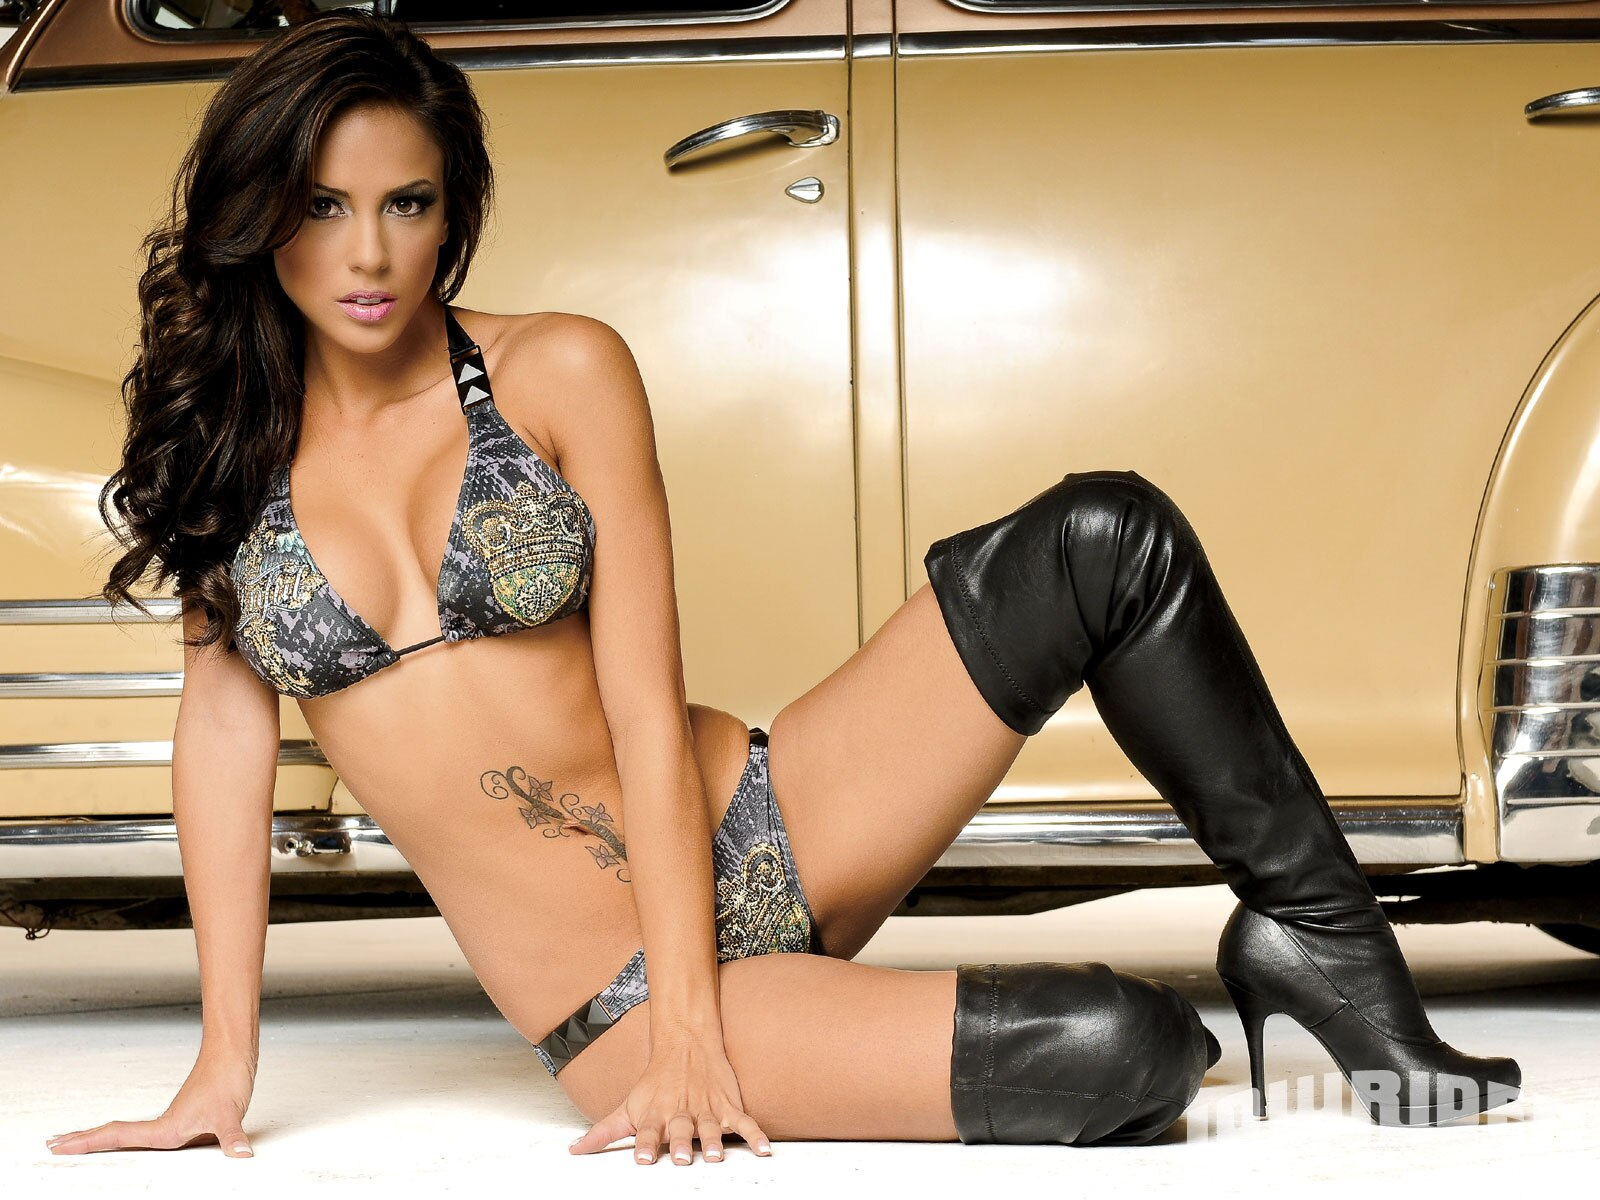 Fast Car Wallpaper For Bedroom Melissa Lowrider Girls Model Lowrider Girls Magazine